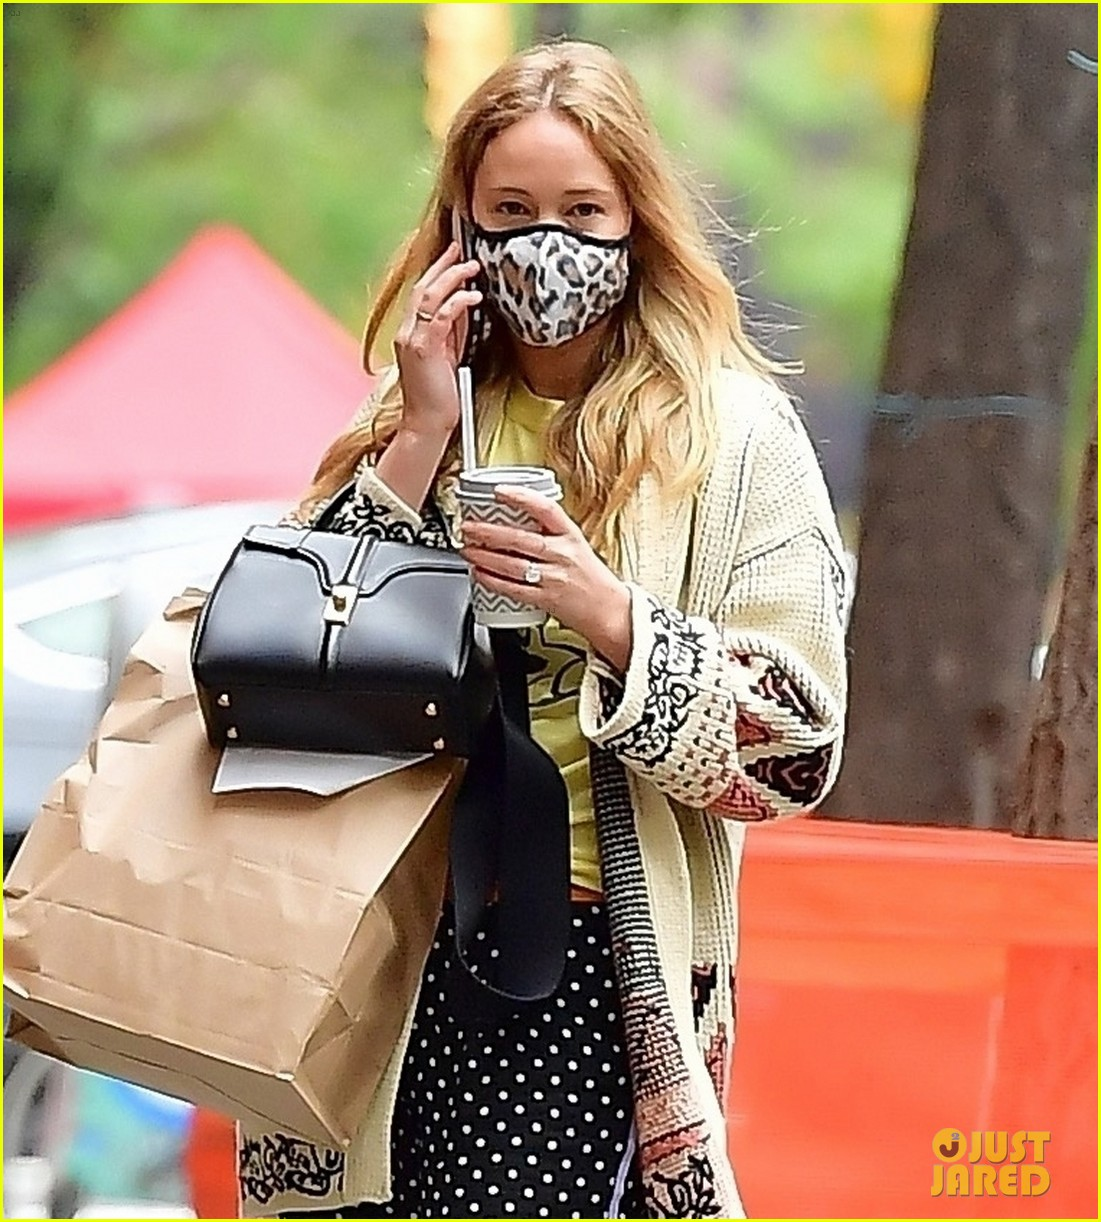 jennifer lawrence casual fashion in new york city 024495672